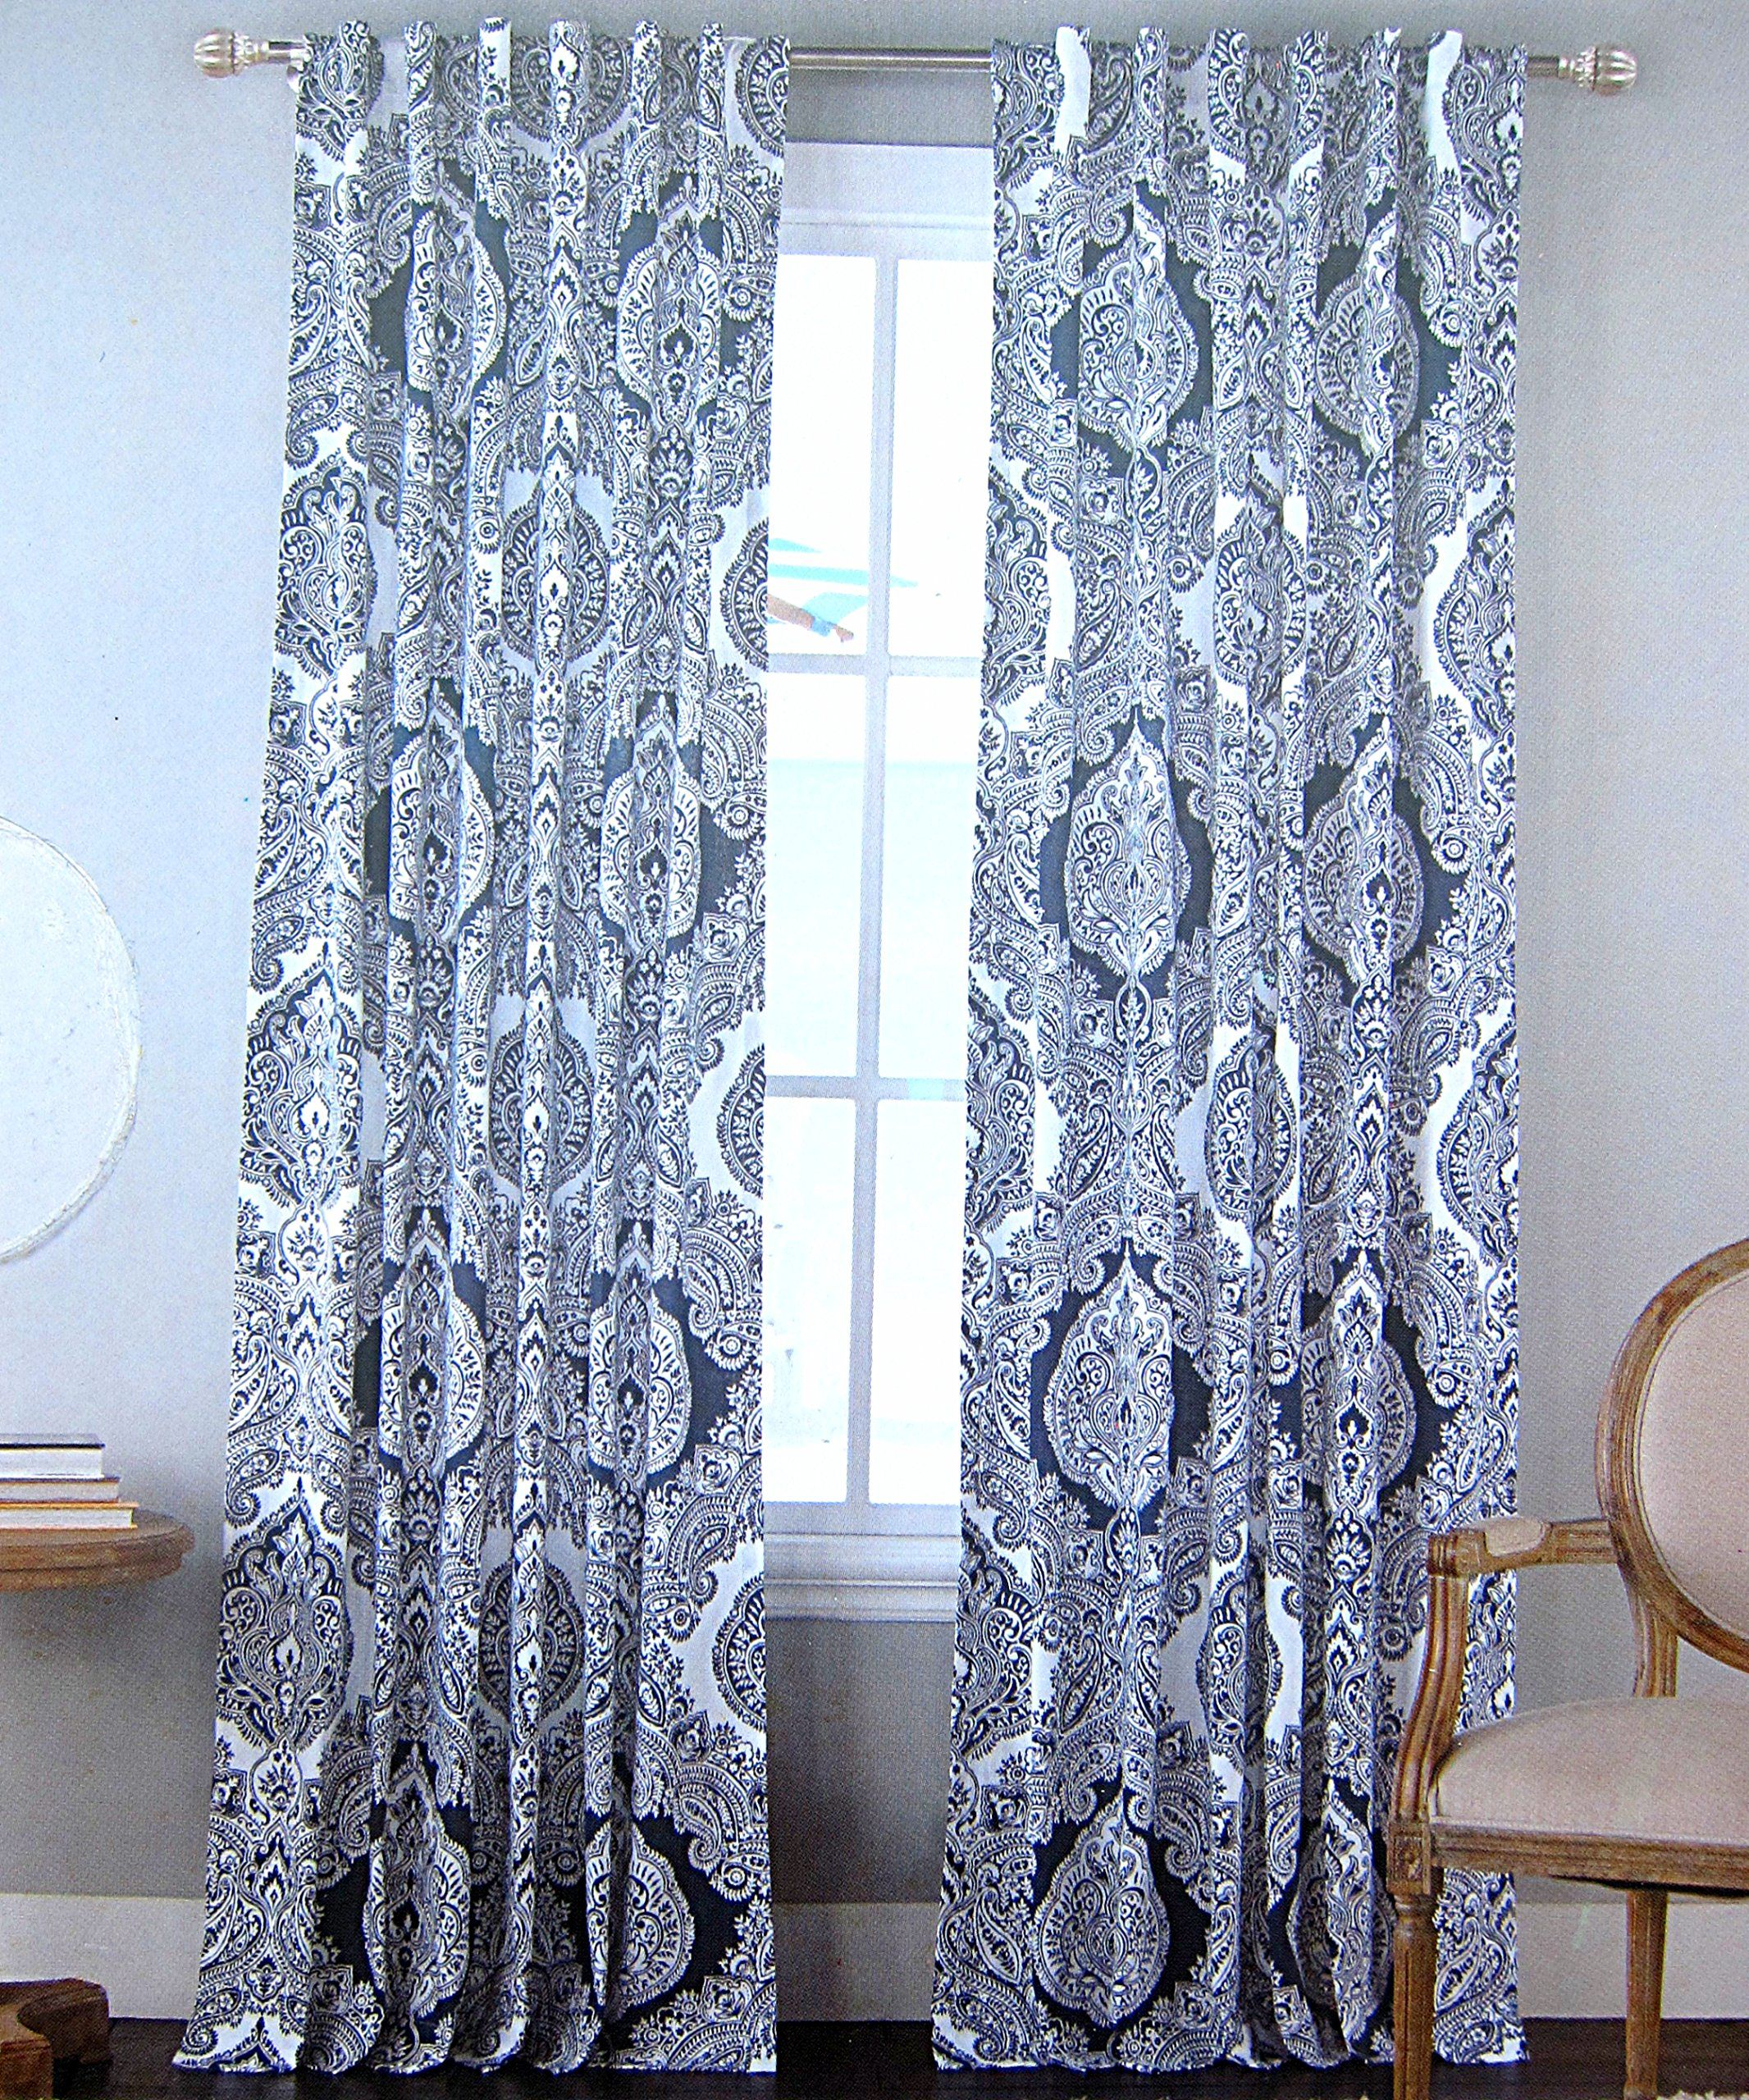 curtains curtain attachment honoroak sets royal bedroom beautiful for bedrooms navy of the home blue